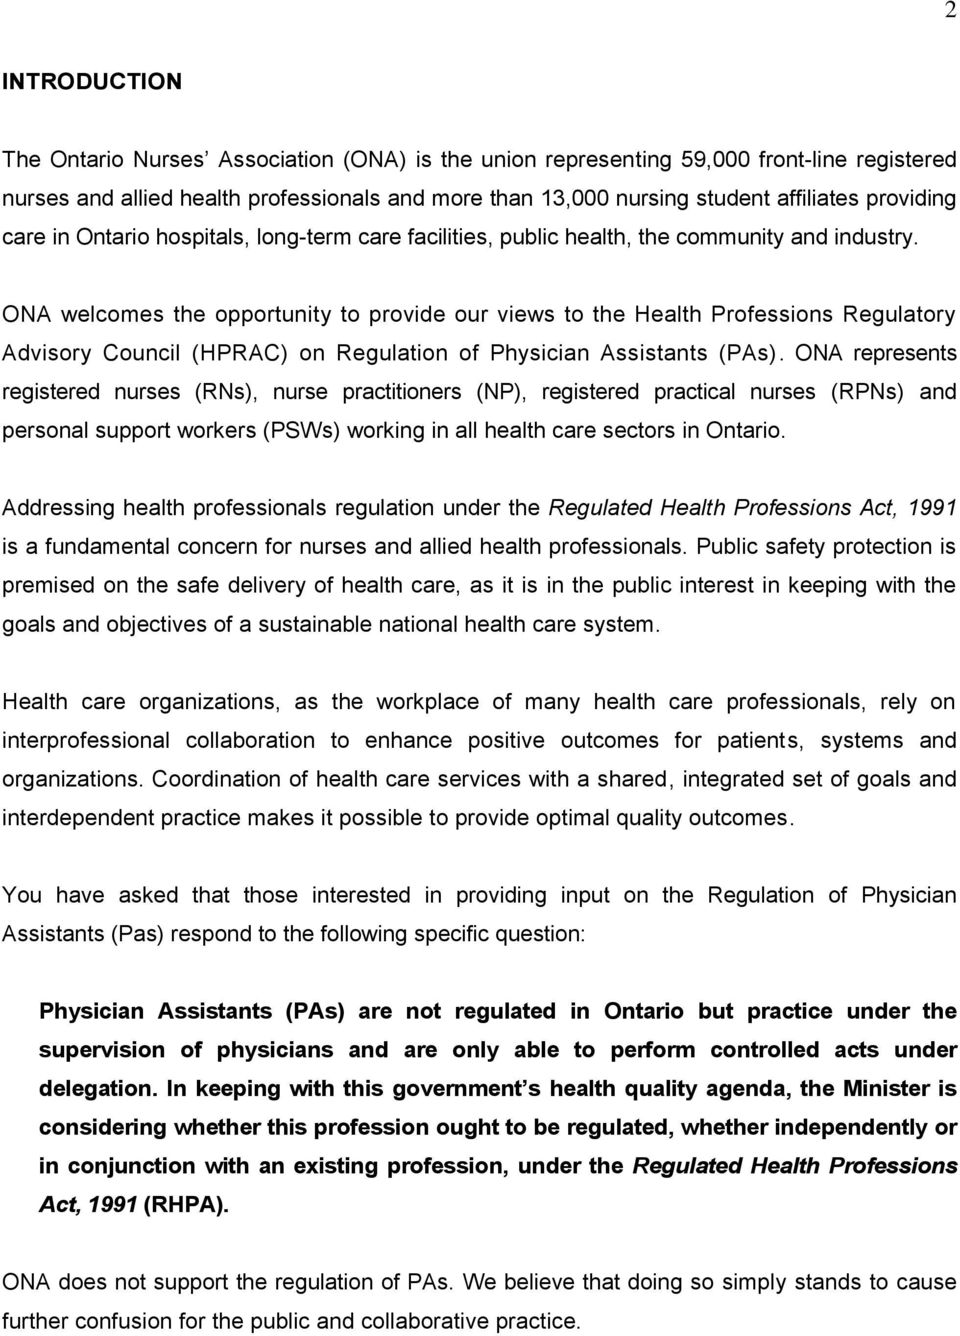 ONA welcomes the opportunity to provide our views to the Health Professions Regulatory Advisory Council (HPRAC) on Regulation of Physician Assistants (PAs).